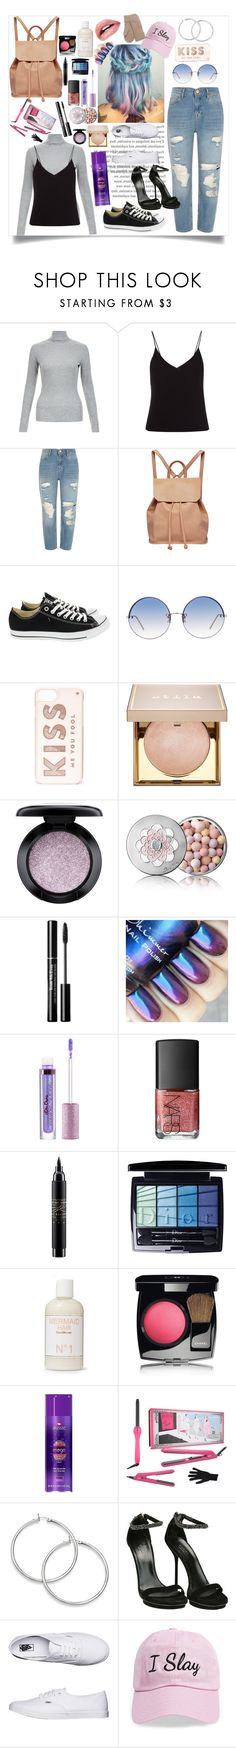 """""""Slay all day"""" by styler13522 ❤ liked on Polyvore featuring T By Alexander Wang, River Island, Urban Originals, Converse, Linda Farrow, Kate Spade, Stila, MAC Cosmetics, Guerlain and NARS Cosmetics"""